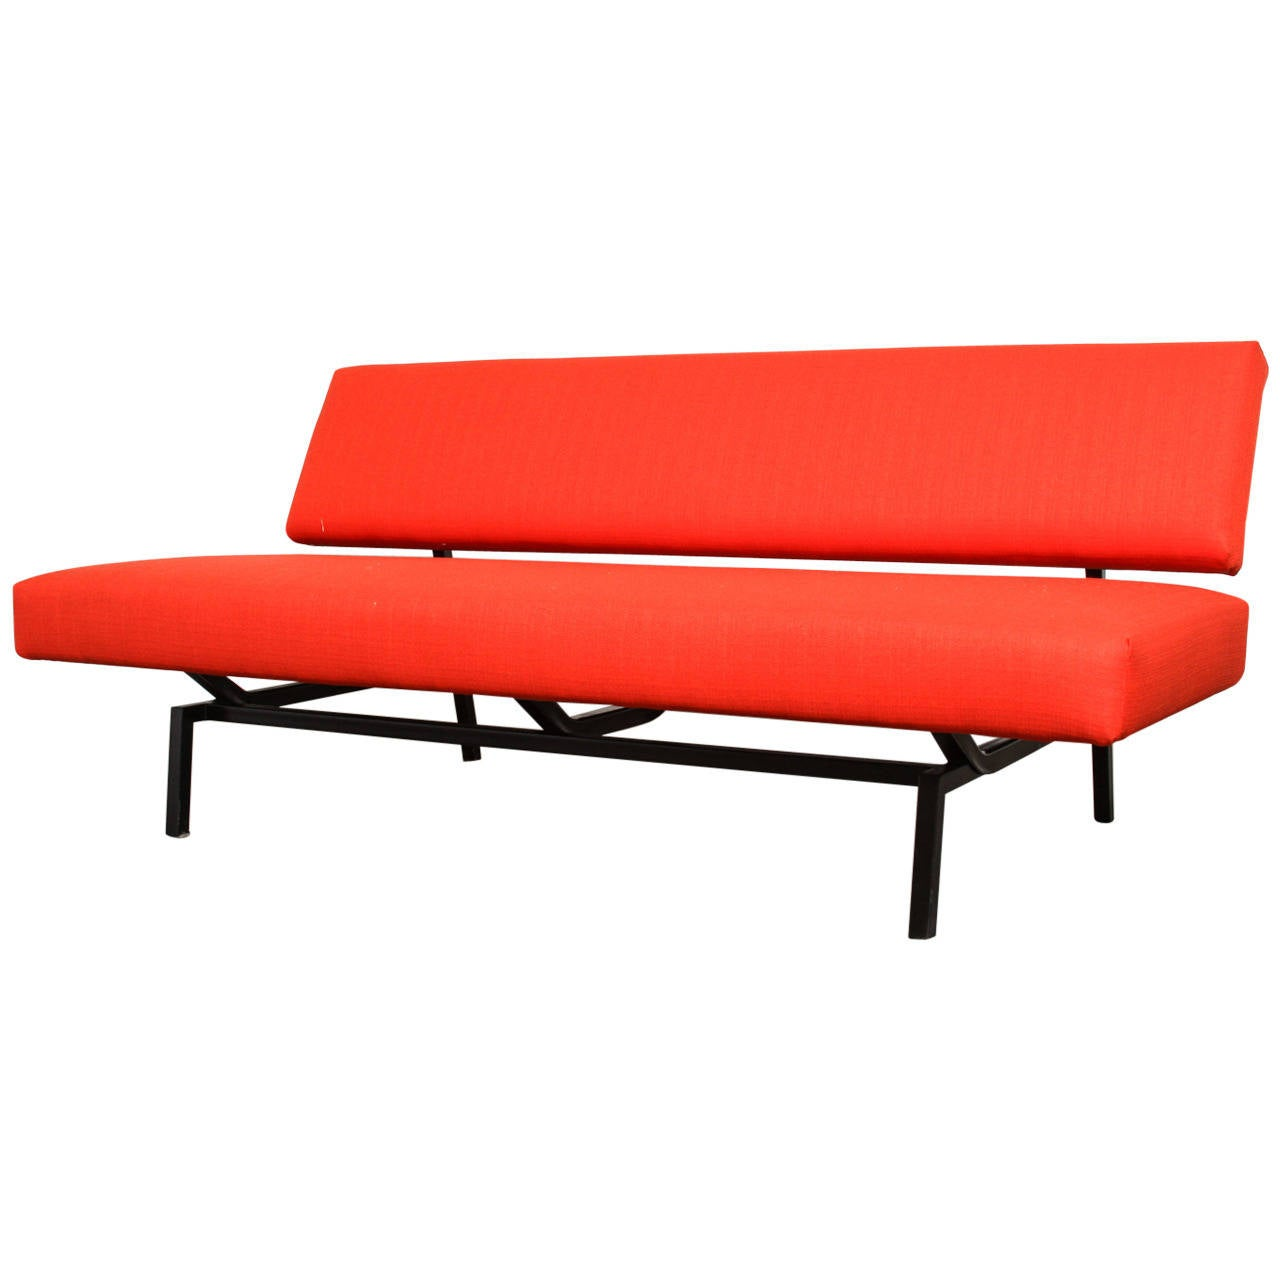 Minimal Coen De Vries Style Flame Red Sofa For Sale